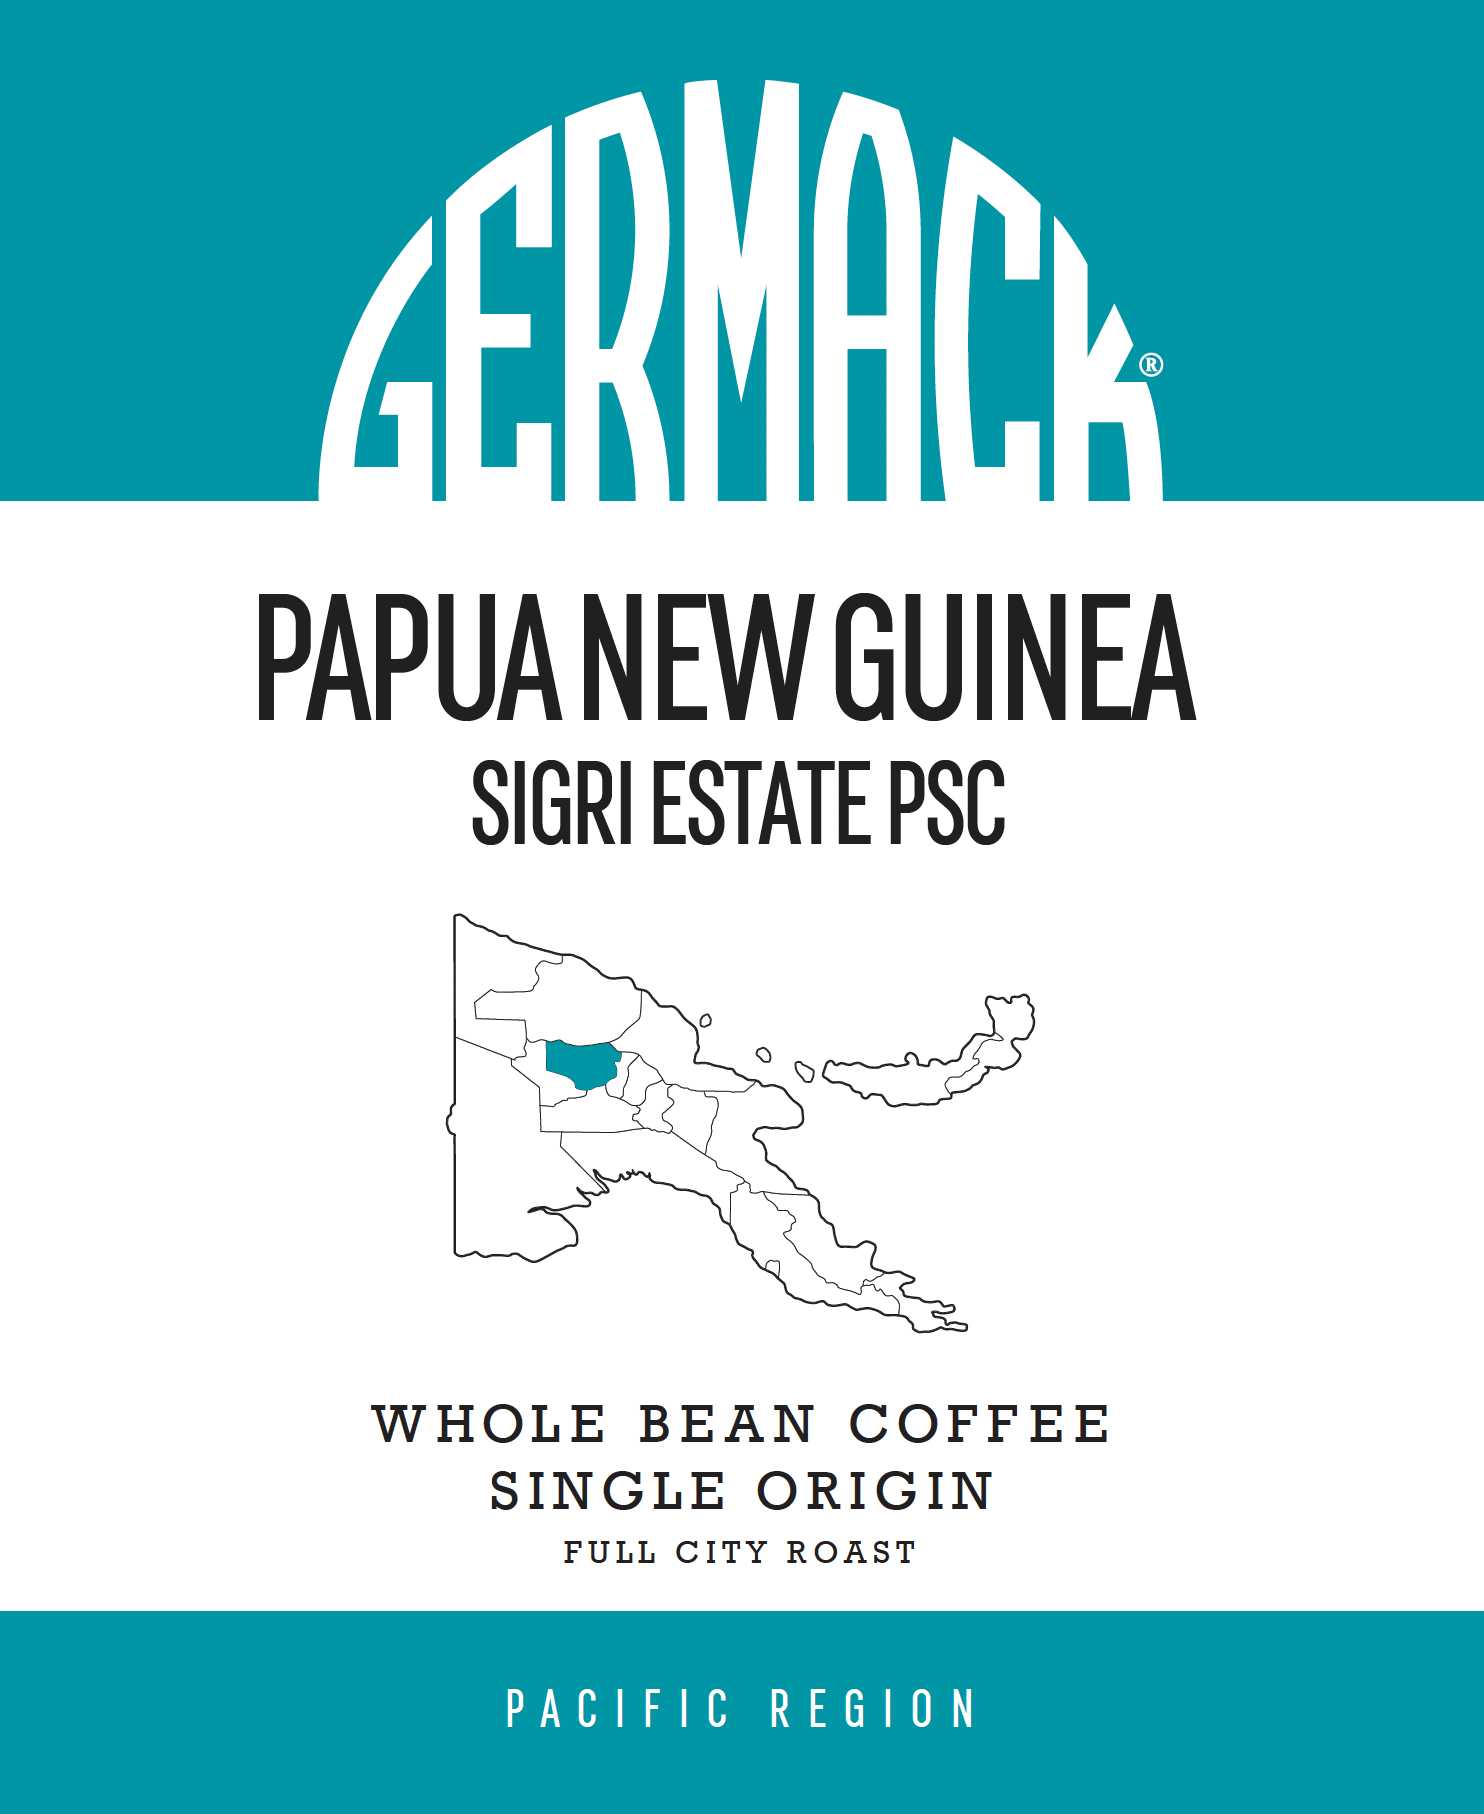 Picture Germack Coffee (5 LB.) - Papua New Guinea Sigri Estate PSC